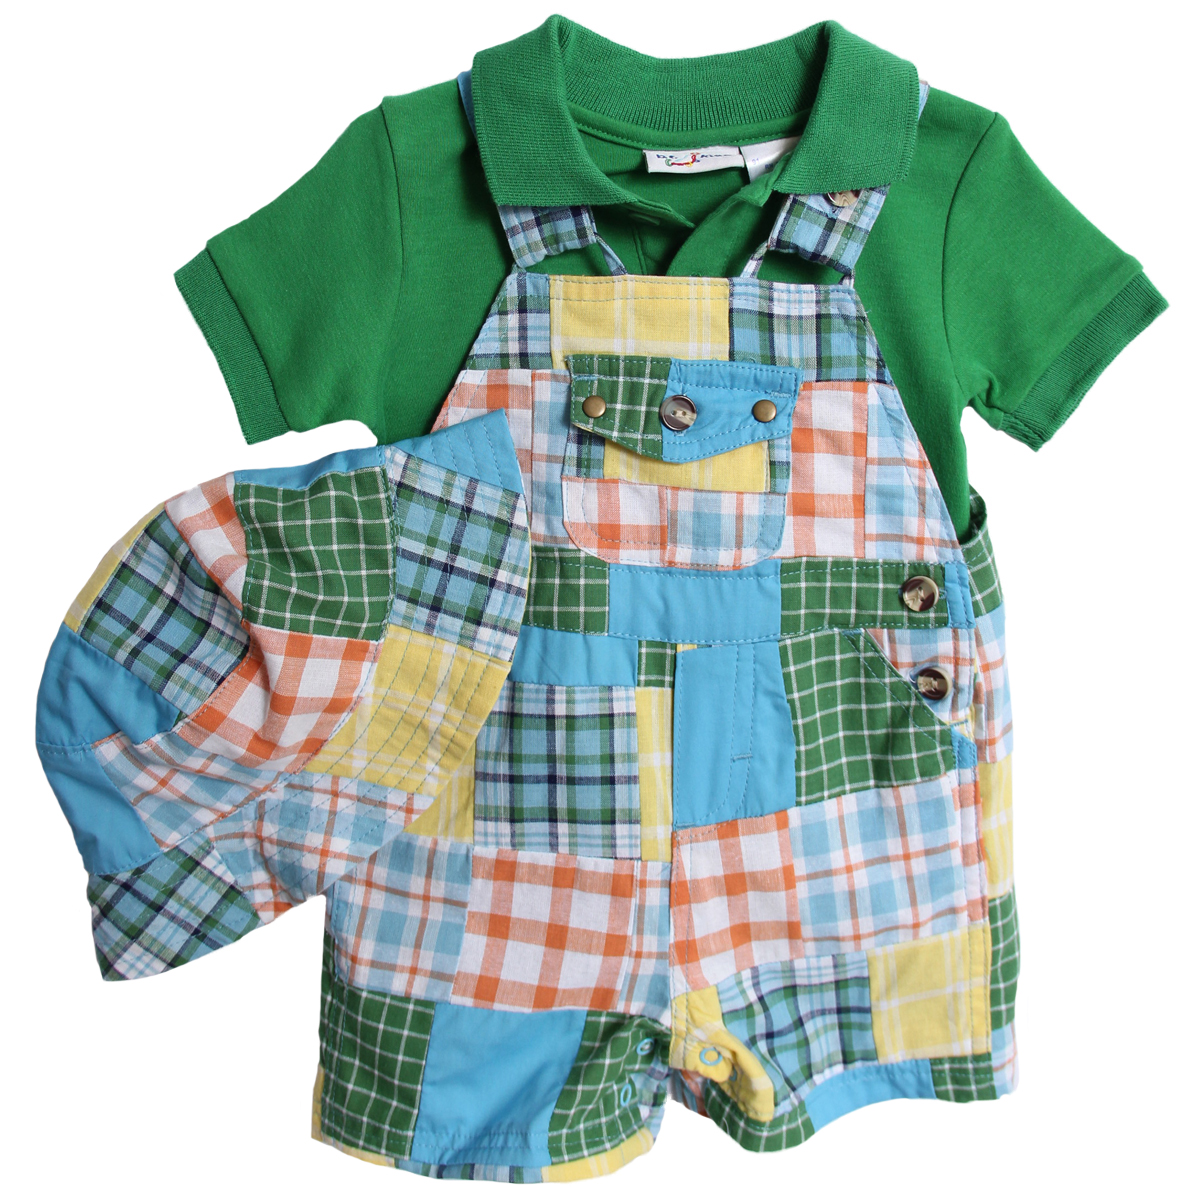 B. T. Kids Newborn Boy 3 Piece Green Polo Shirt Plaid Patchwork Overalls Shorts Hat at Sears.com